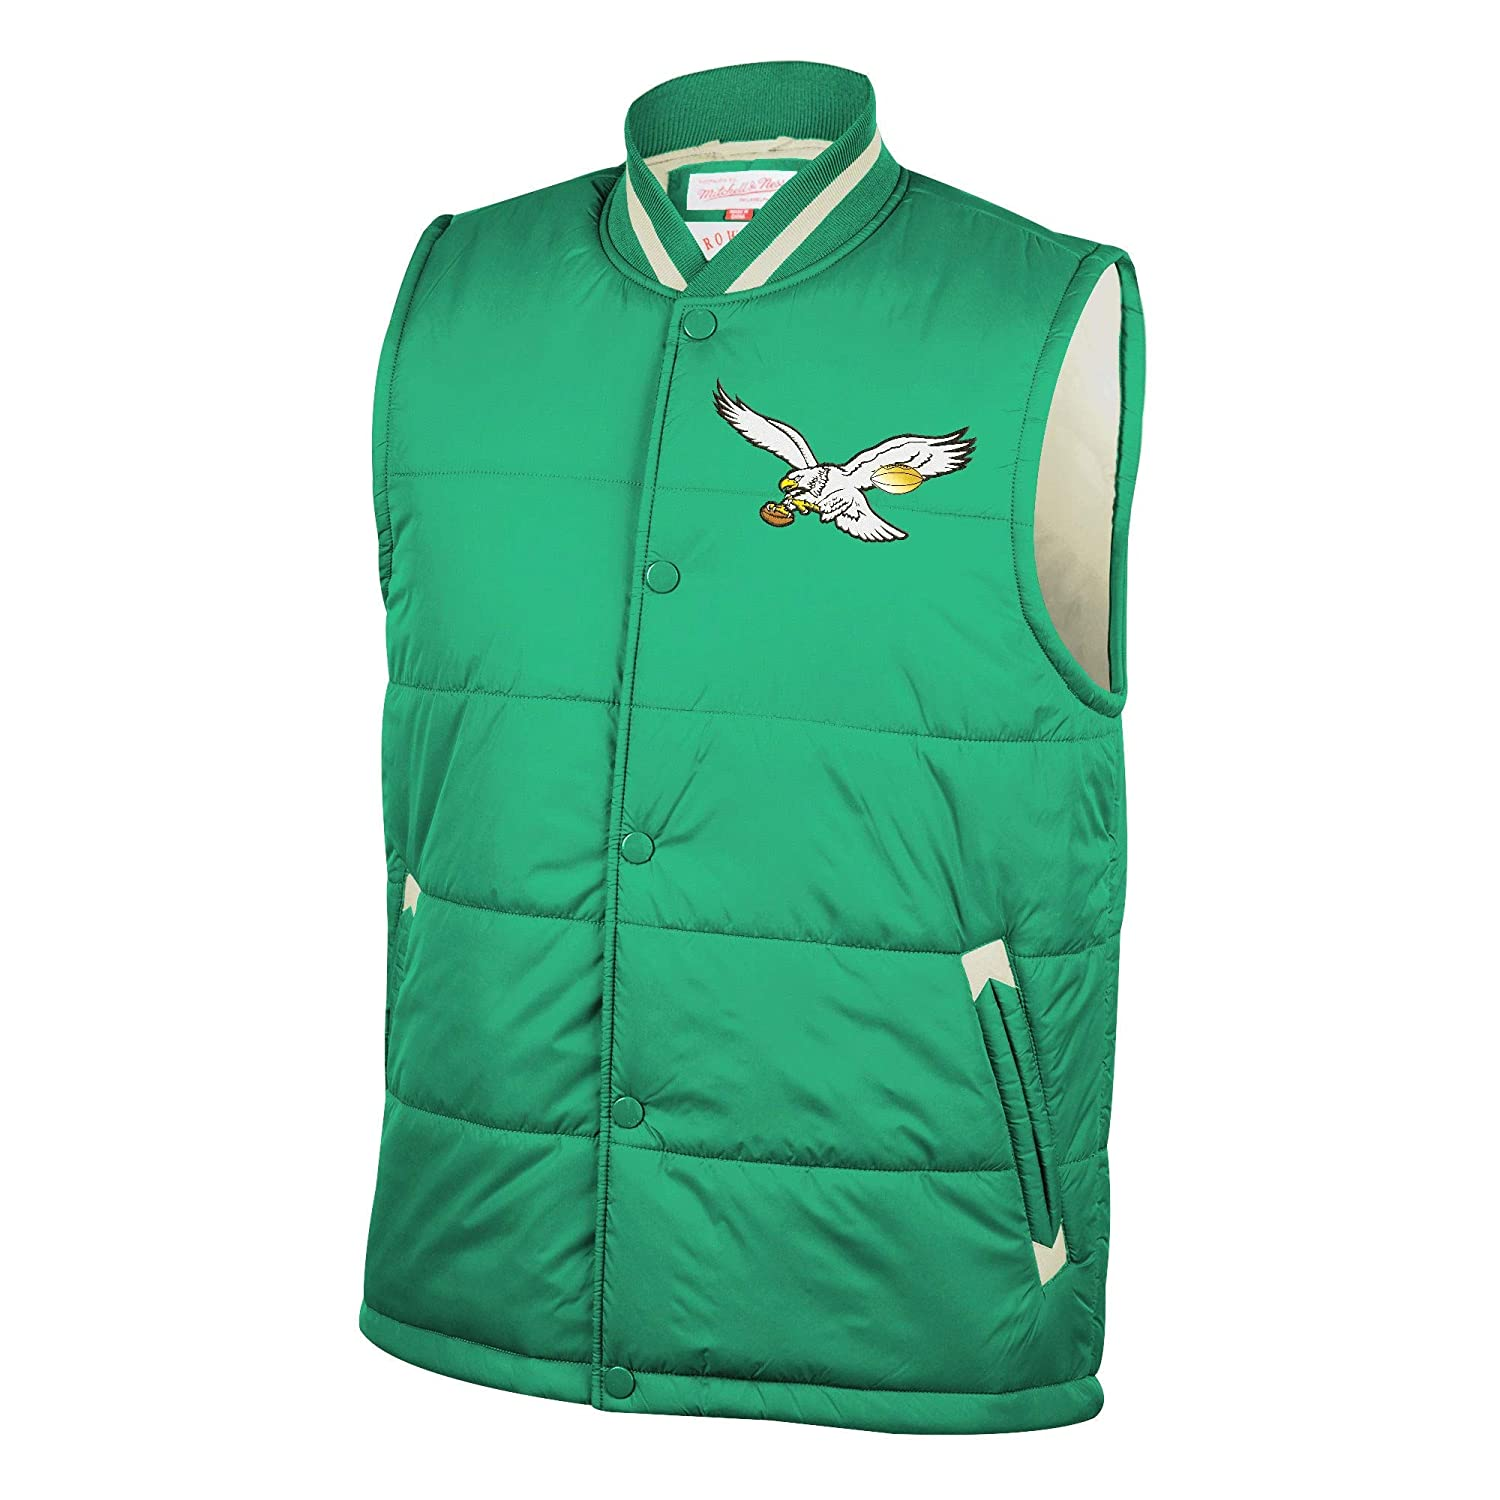 943524c218b Amazon.com   Mitchell   Ness Philadelphia Eagles Amazing Catch Vest - Green  (2XL)   Sports   Outdoors